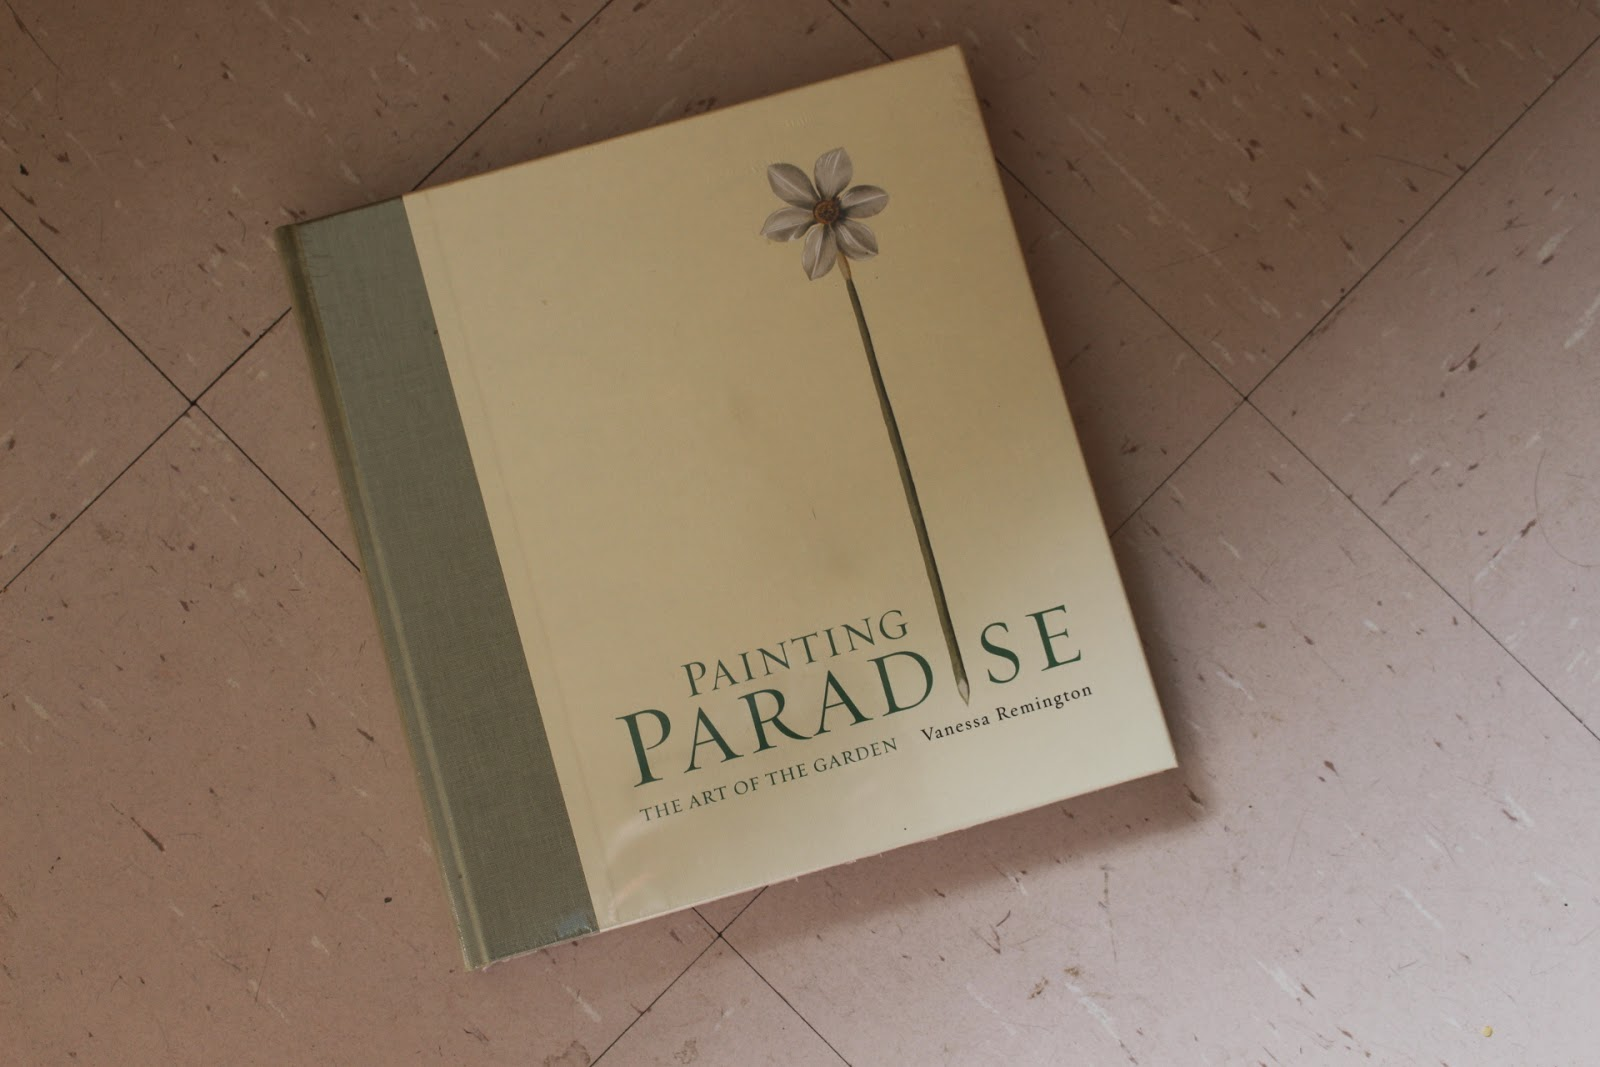 Picture of the book accompanying the Painting Paradise exhibition